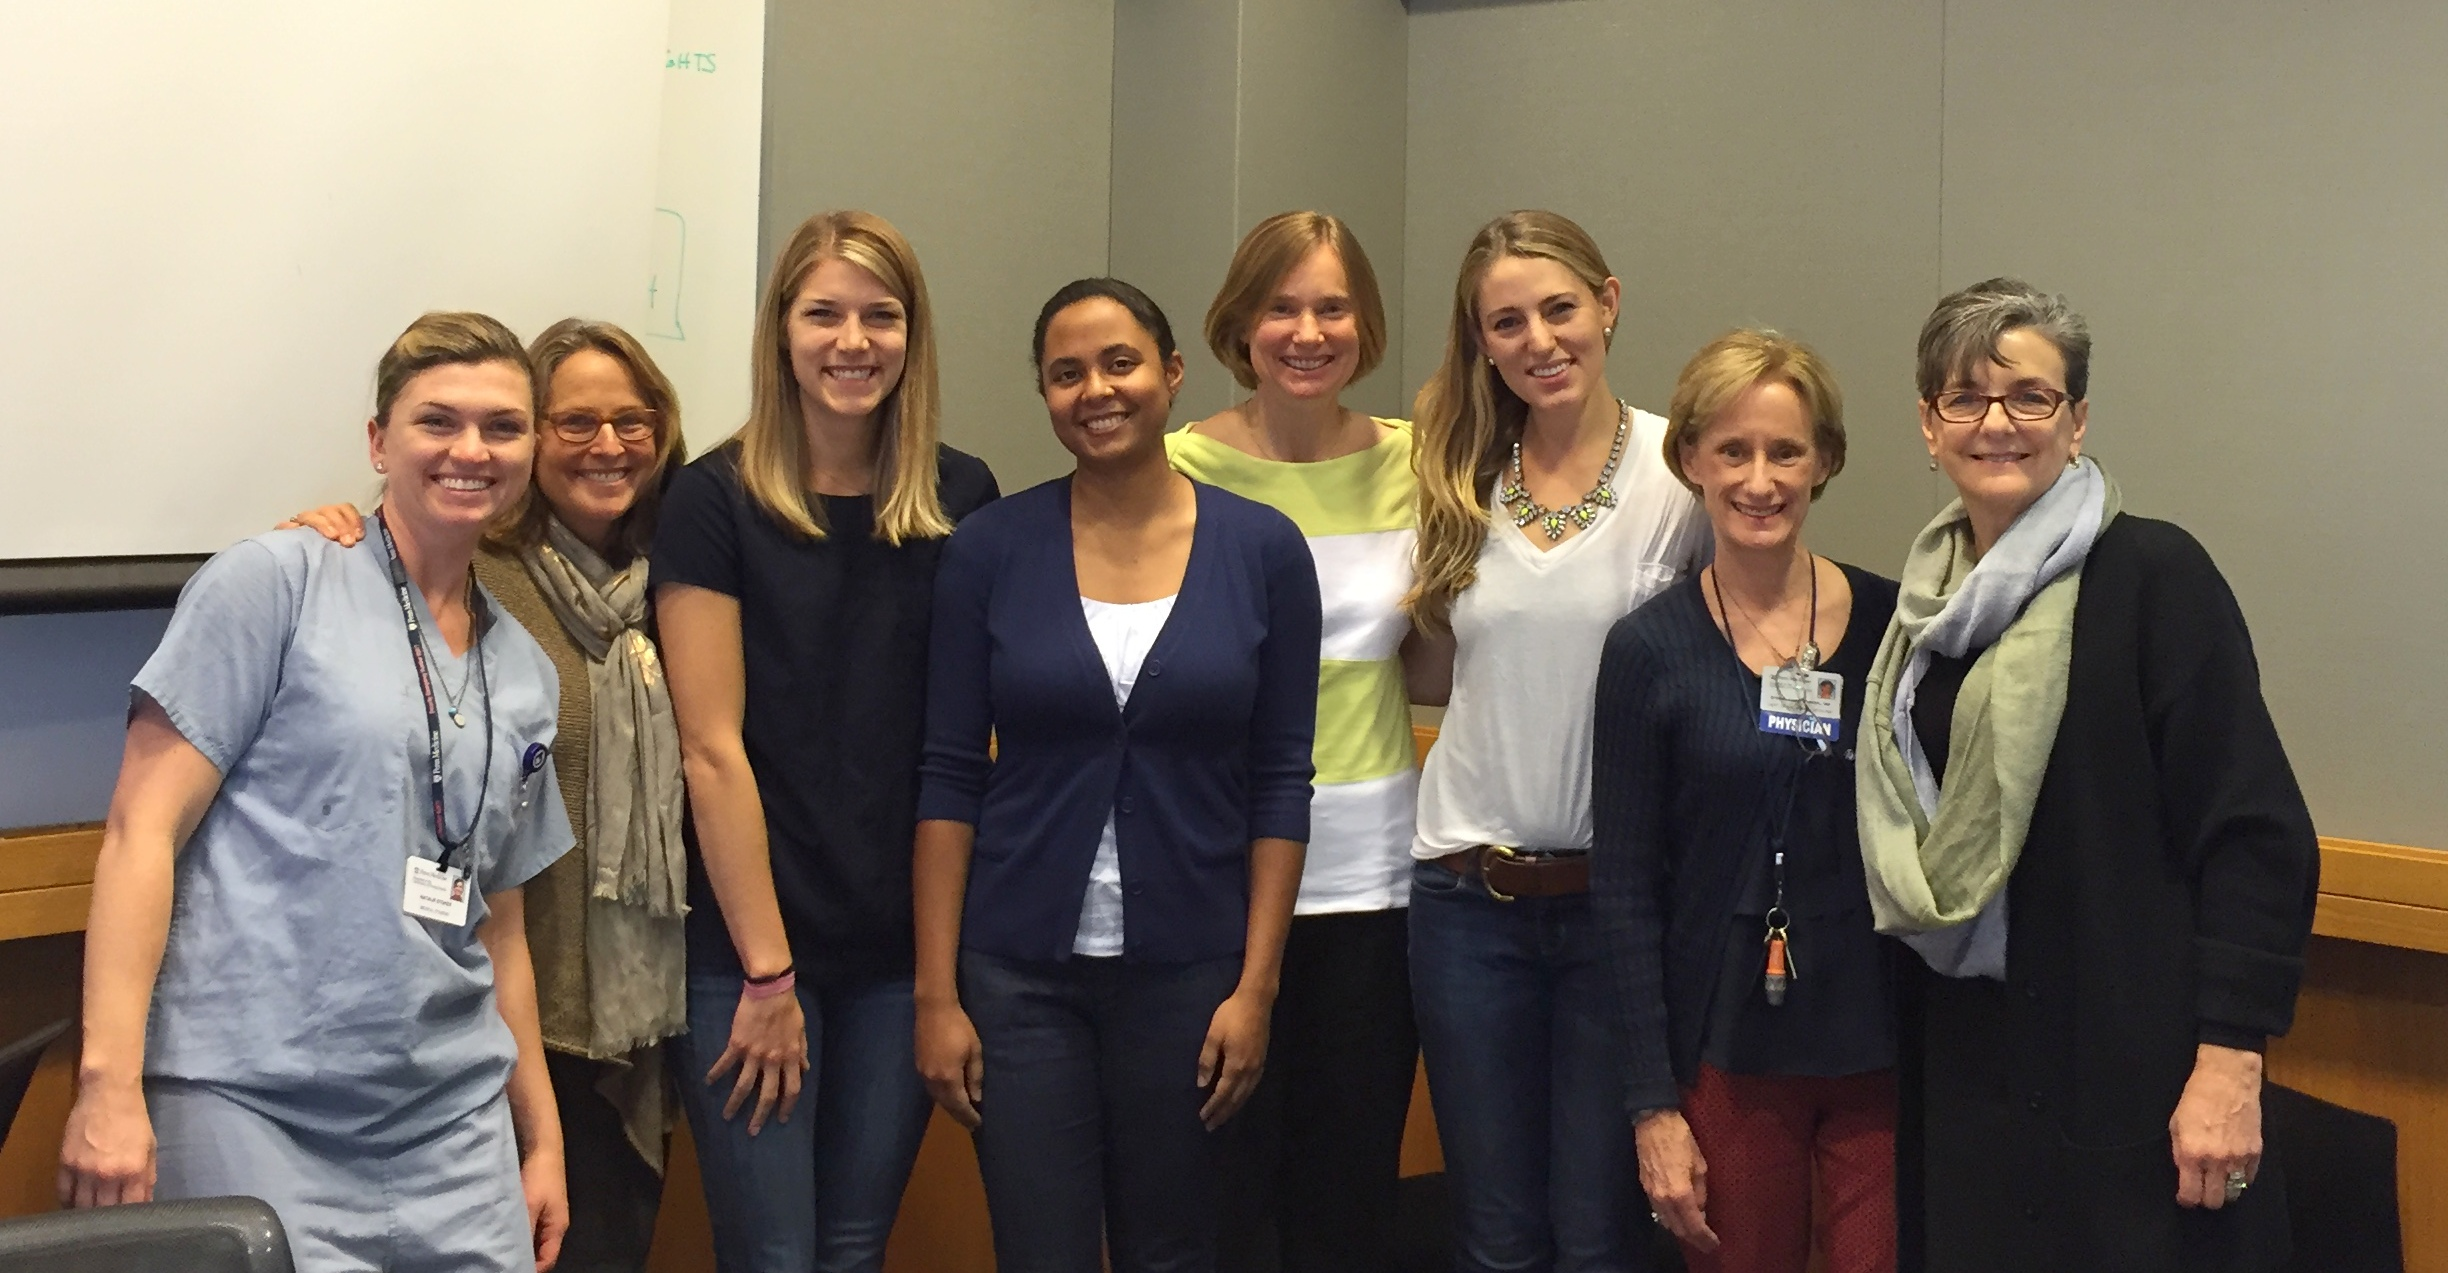 From left to right, FOCUS staff and physicians with current fellowship recipients: Natalie Stokes, M'16, Patricia Scott, Sarah Huepenbecker, M'16, Kyra Jefferson-George, M'16, Hillary Bogner, MD, MSCE, Maren Shapiro, M'16, Stephanie Abbuhl, MD, FACEP, and Lucy Tuton, PhD.